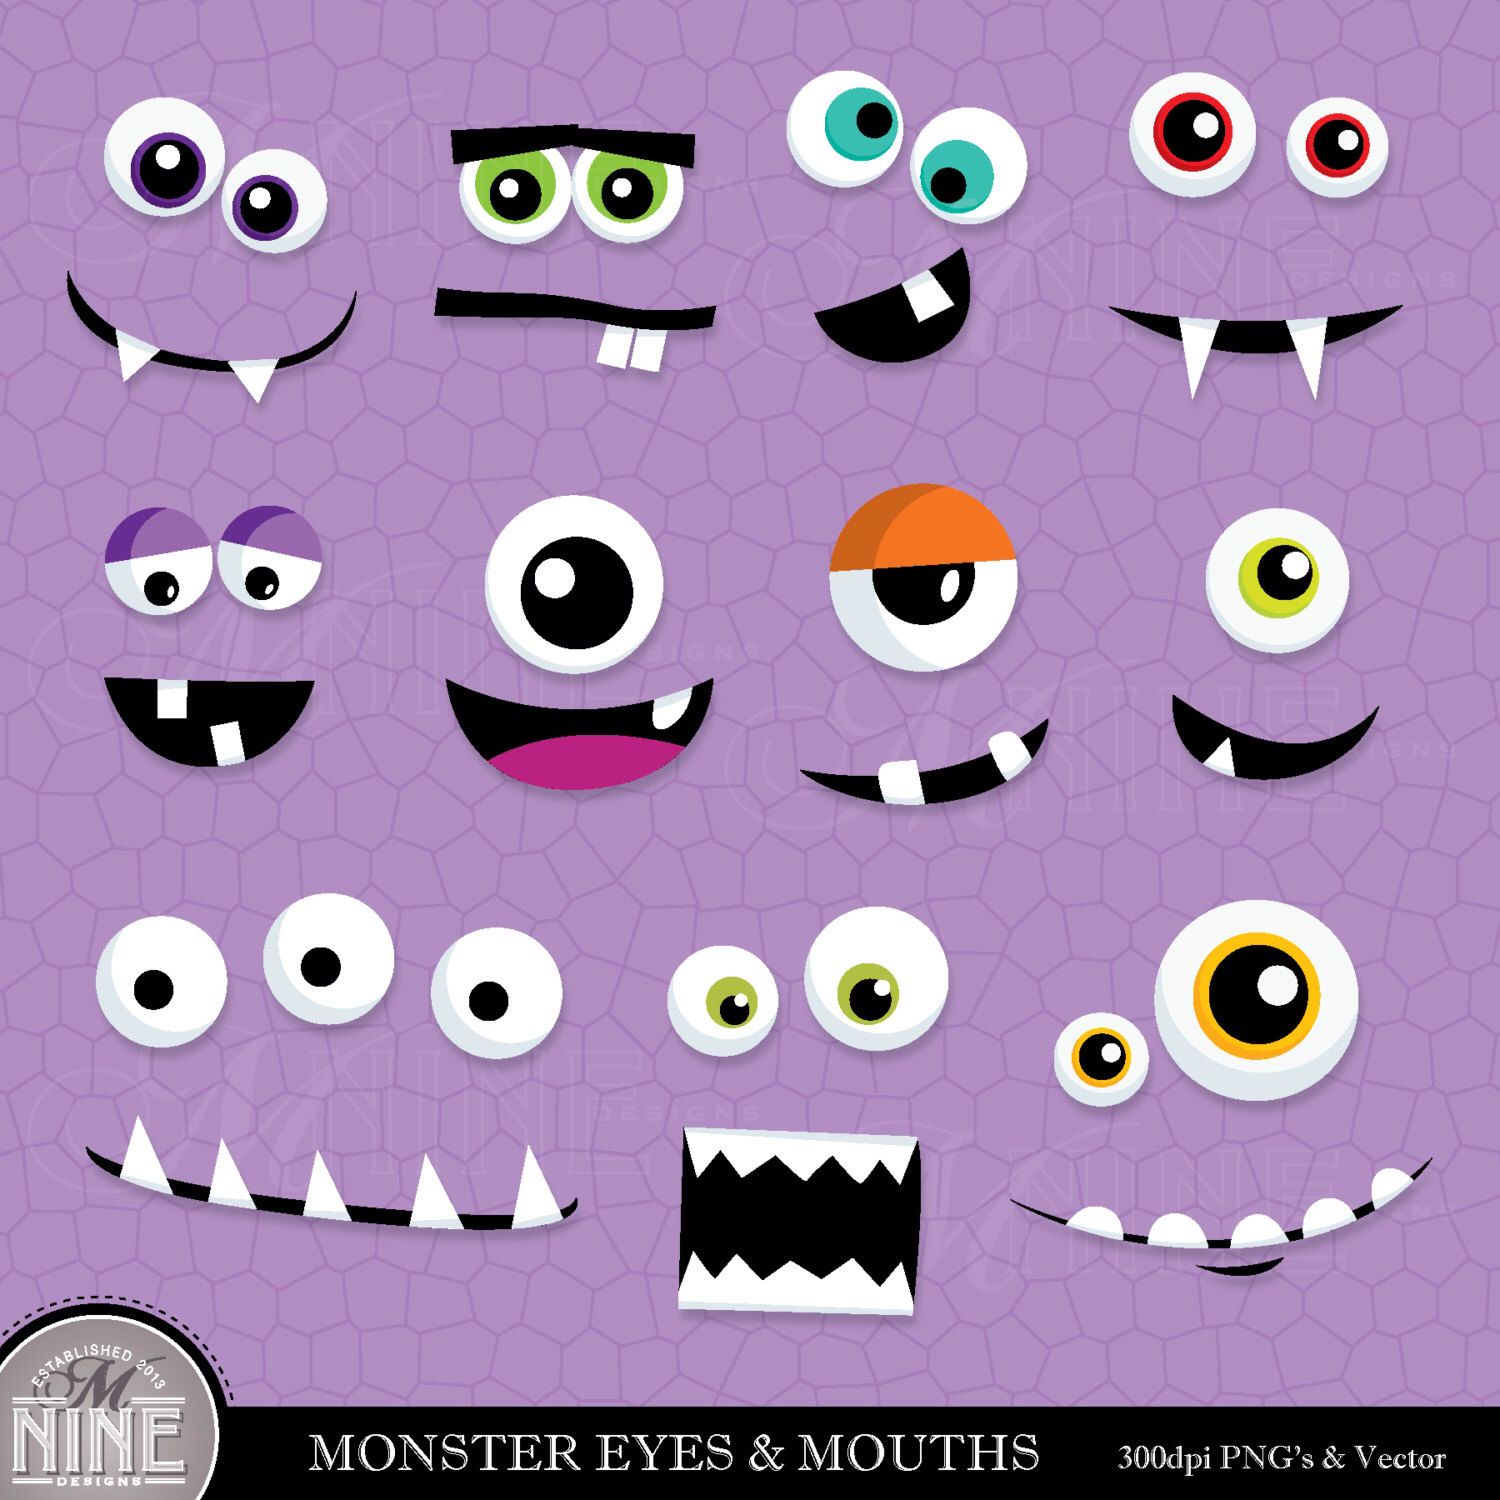 Red light clip art amp red light clip art clip art images clipartall - Monster Eyes Mouths Clip Art Digital Clipart Instant Download Monster Faces Clipart Vector